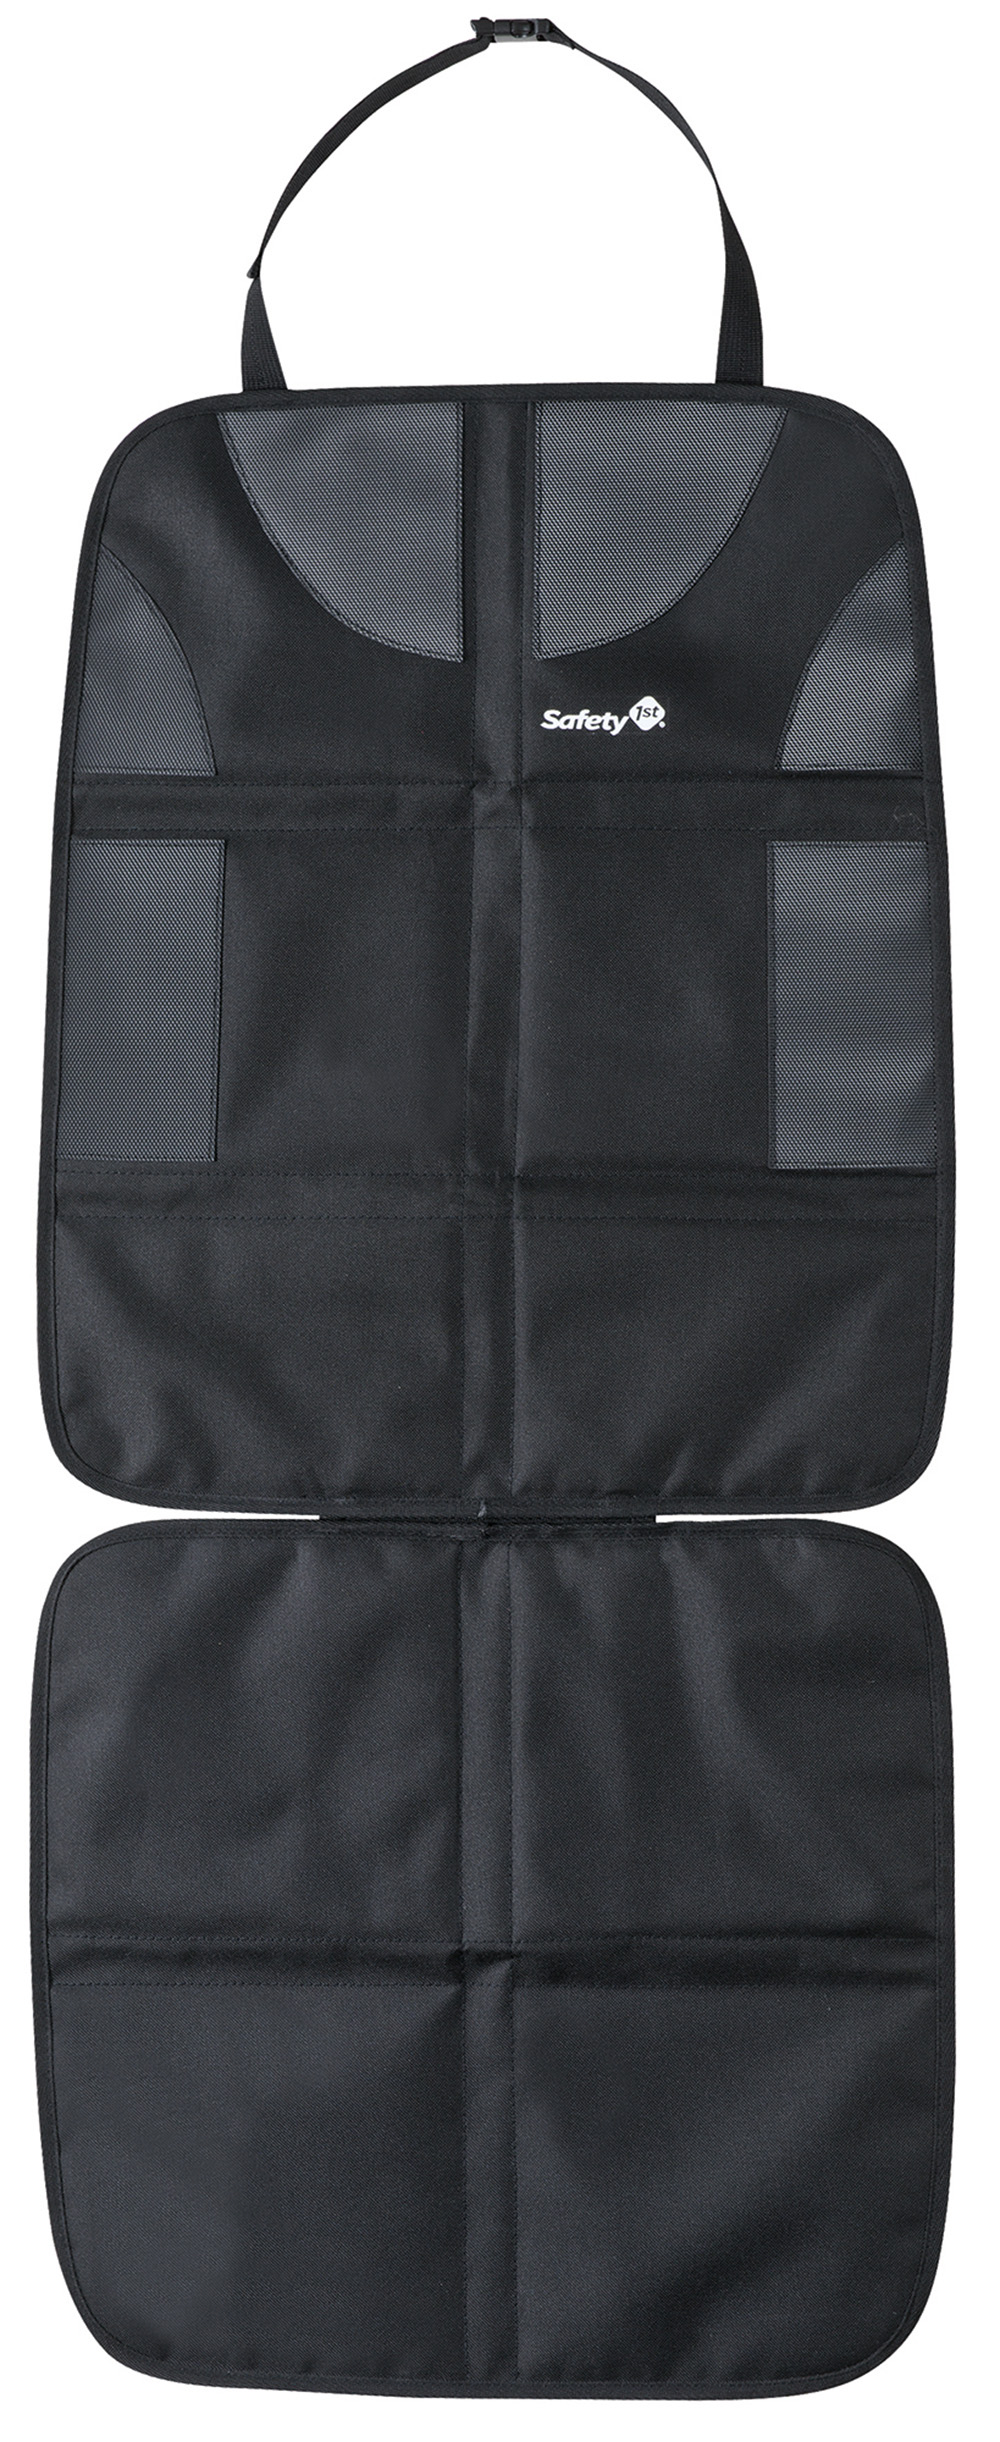 Protector Asiento Safety 1st - Comprar